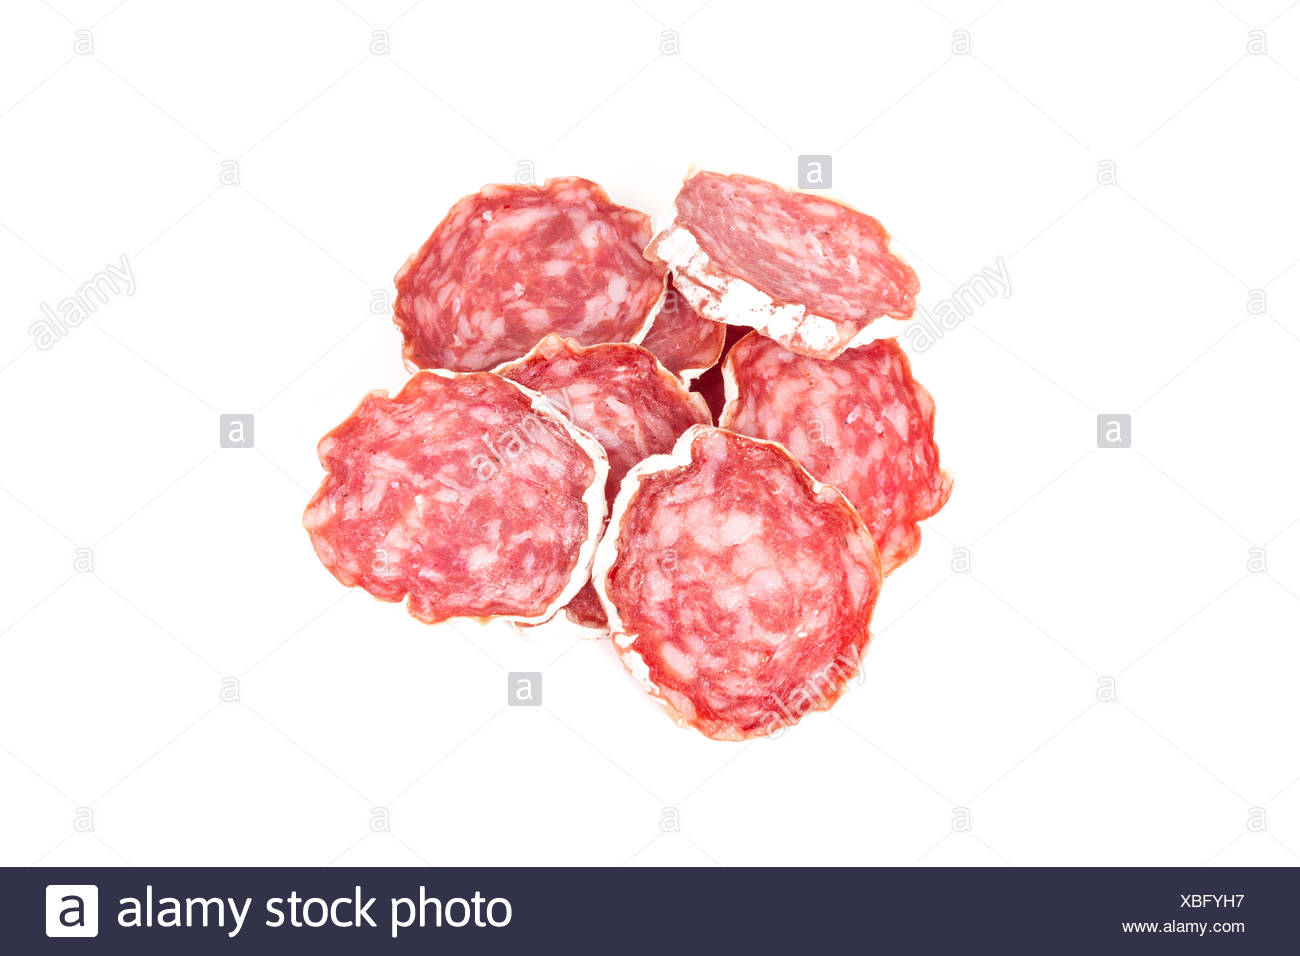 slices of salami isolated on a white - Stock Image